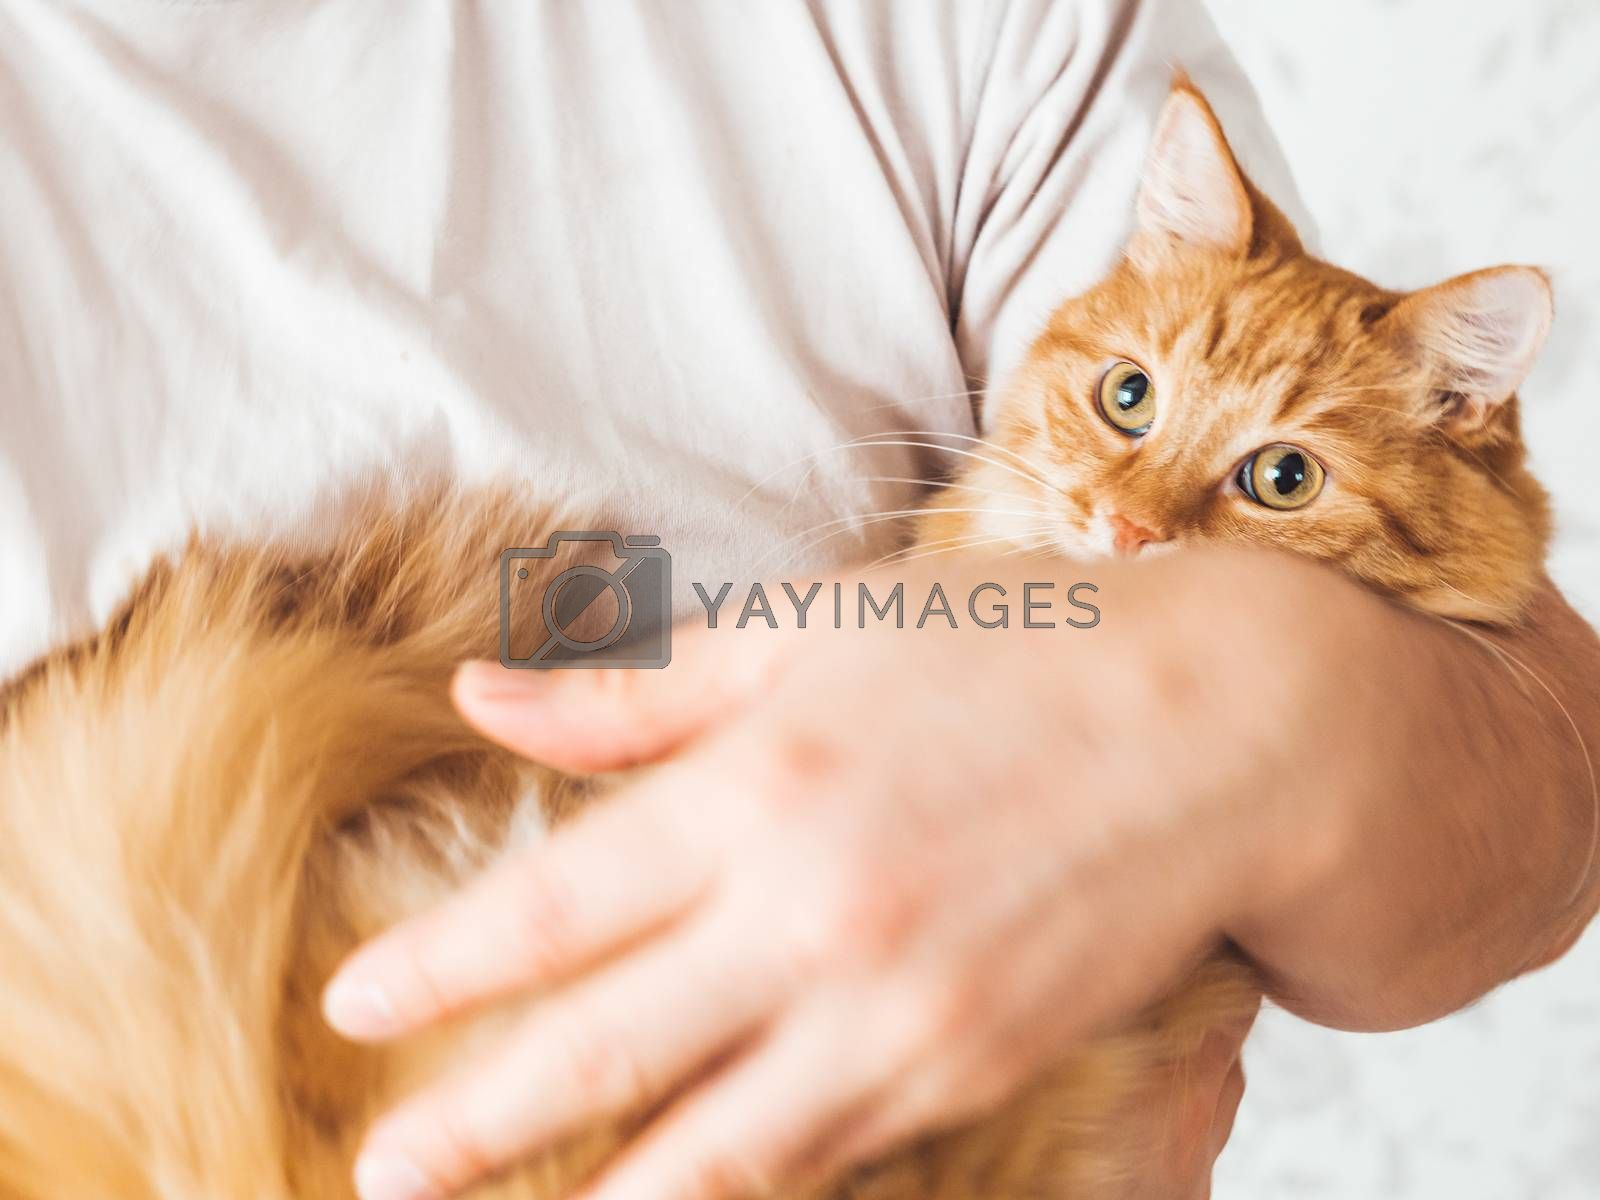 Man cuddles her cute ginger cat. Fluffy pet looks pleased and sleepy. Fuzzy domestic animal. Cat lover.